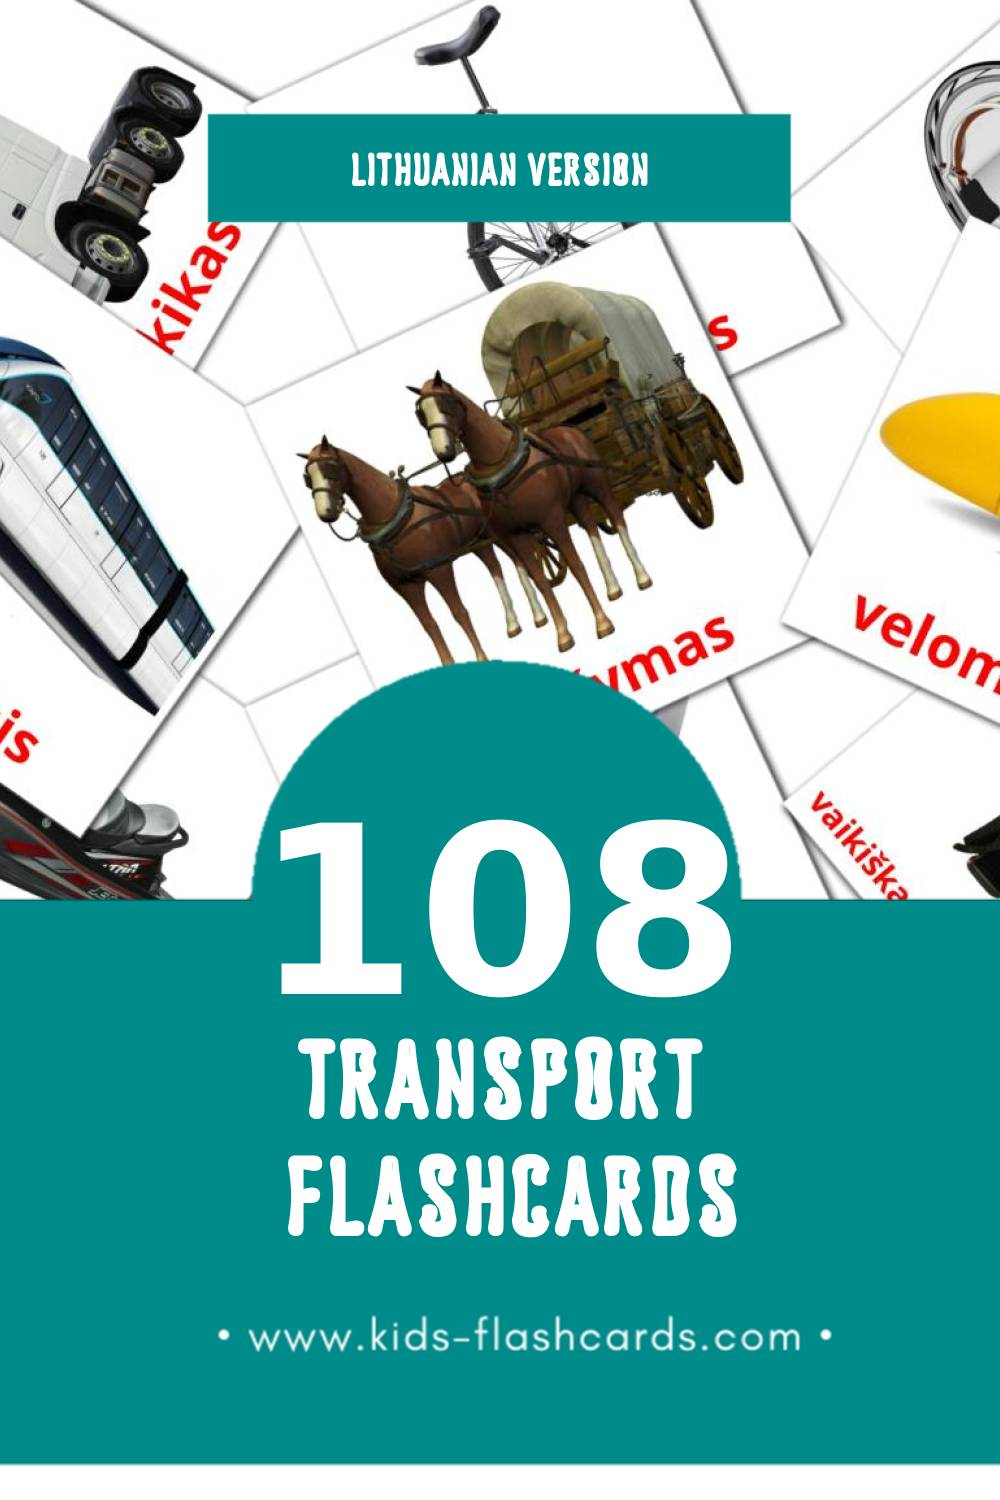 Visual Transportas Flashcards for Toddlers (108 cards in Lithuanian)